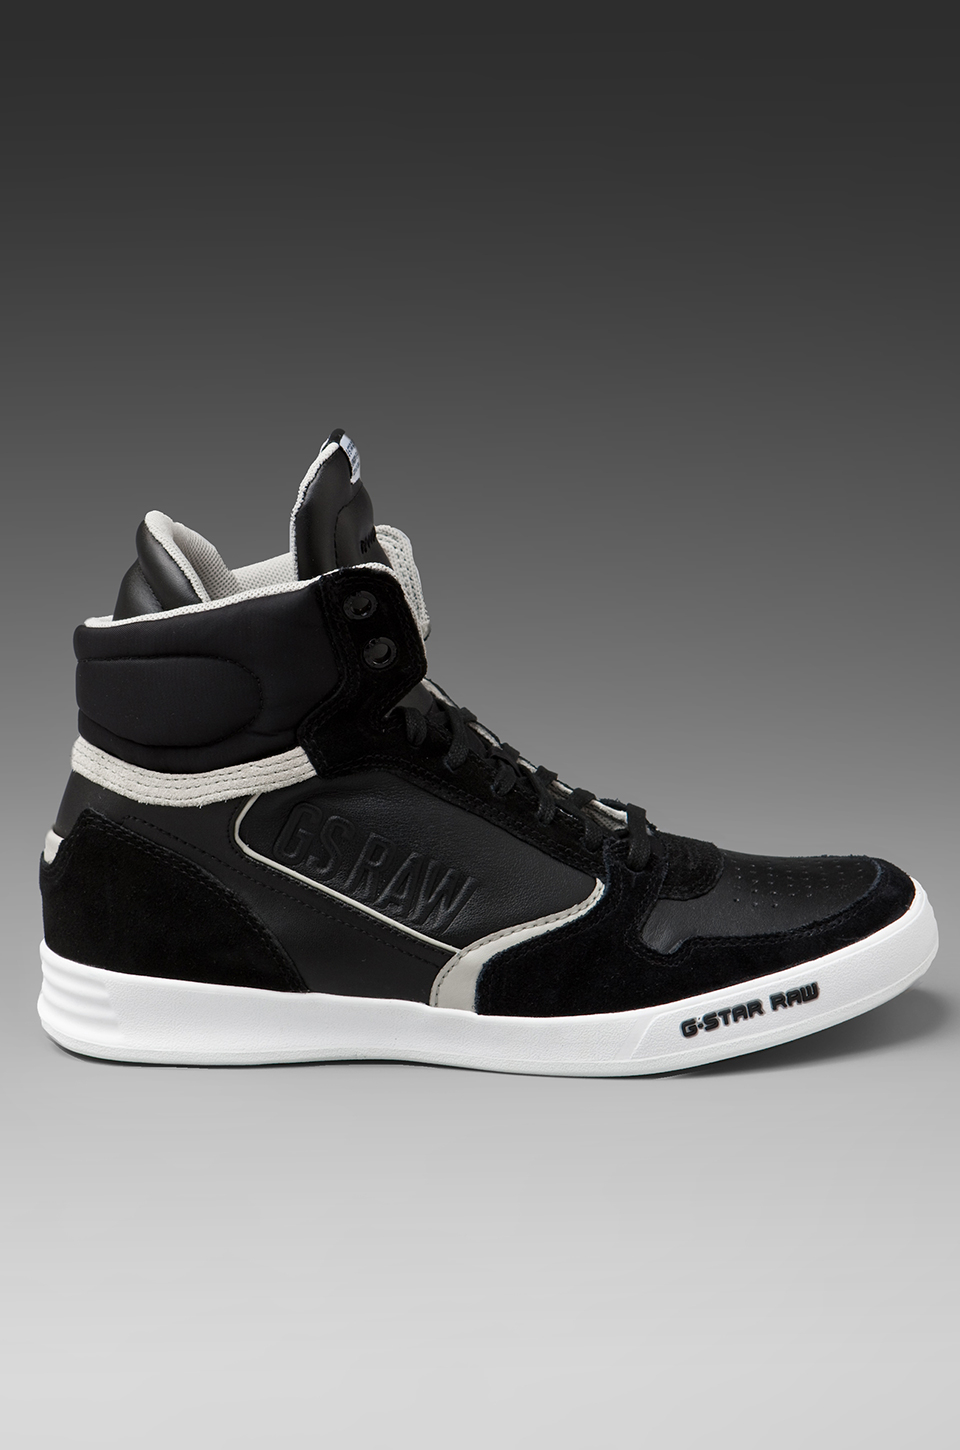 g star raw yard pyro hi top sneaker in black for men lyst. Black Bedroom Furniture Sets. Home Design Ideas